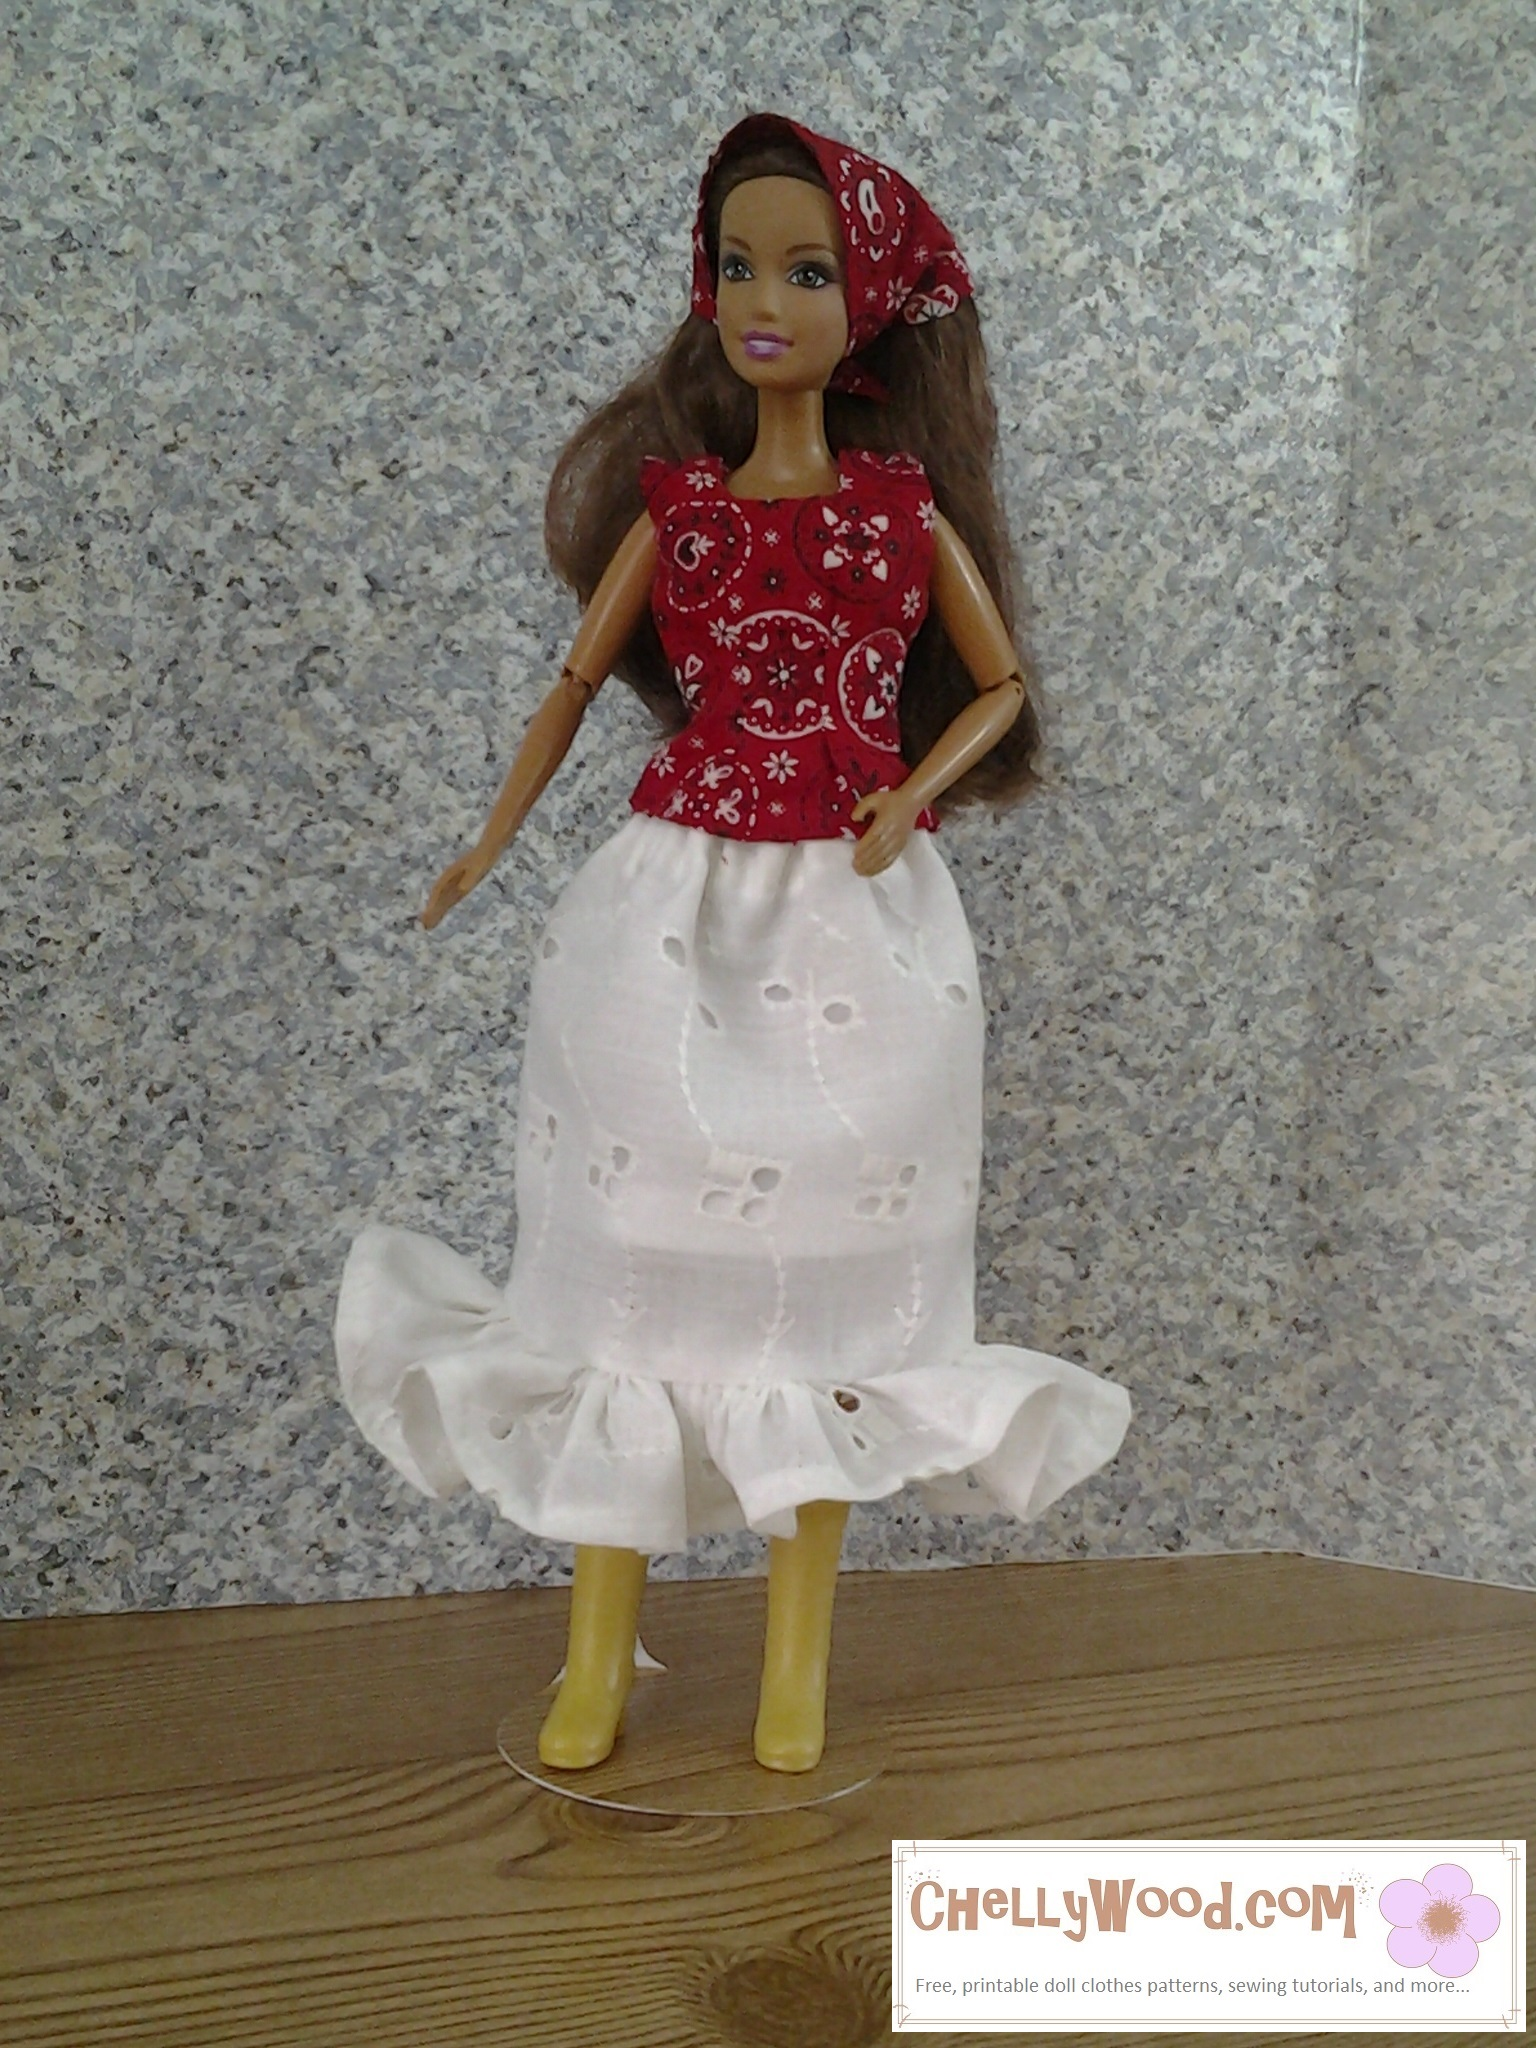 Visit ChellyWood.com for free, printable sewing patterns for dolls of many shapes and sizes. Image shows fashion doll wearing hand-made ruffled eyelet skirt, western-style headscarf, and sleeveless summer top made of cowboy western hankerchief-style cotton fabric. If you'd like to make this outfit for your fashion dolls (including Barbie), please click on the link in the caption.